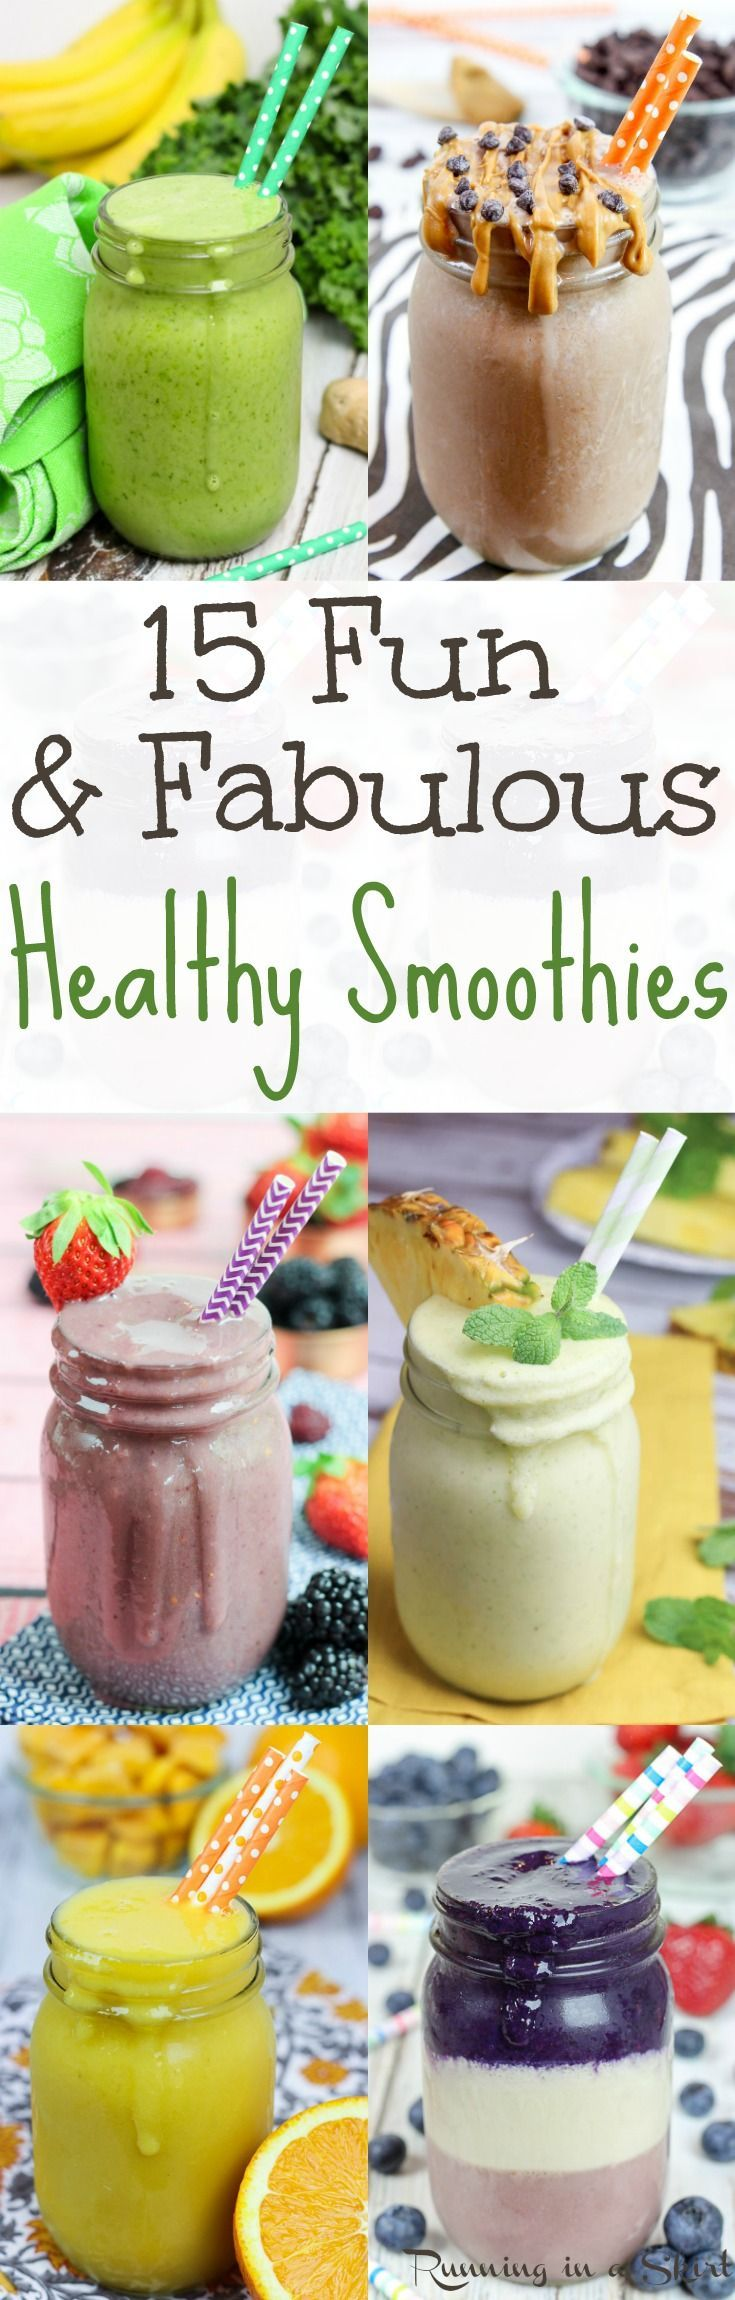 15 Fun & Fabulous Healthy Smoothie recipes.  Simple and easy smoothies for breakfast, meal replacement or snacks.  Great for energy, detox or general health!  All are simple, easy, clean eating and de (Easy Meal Prep For One)